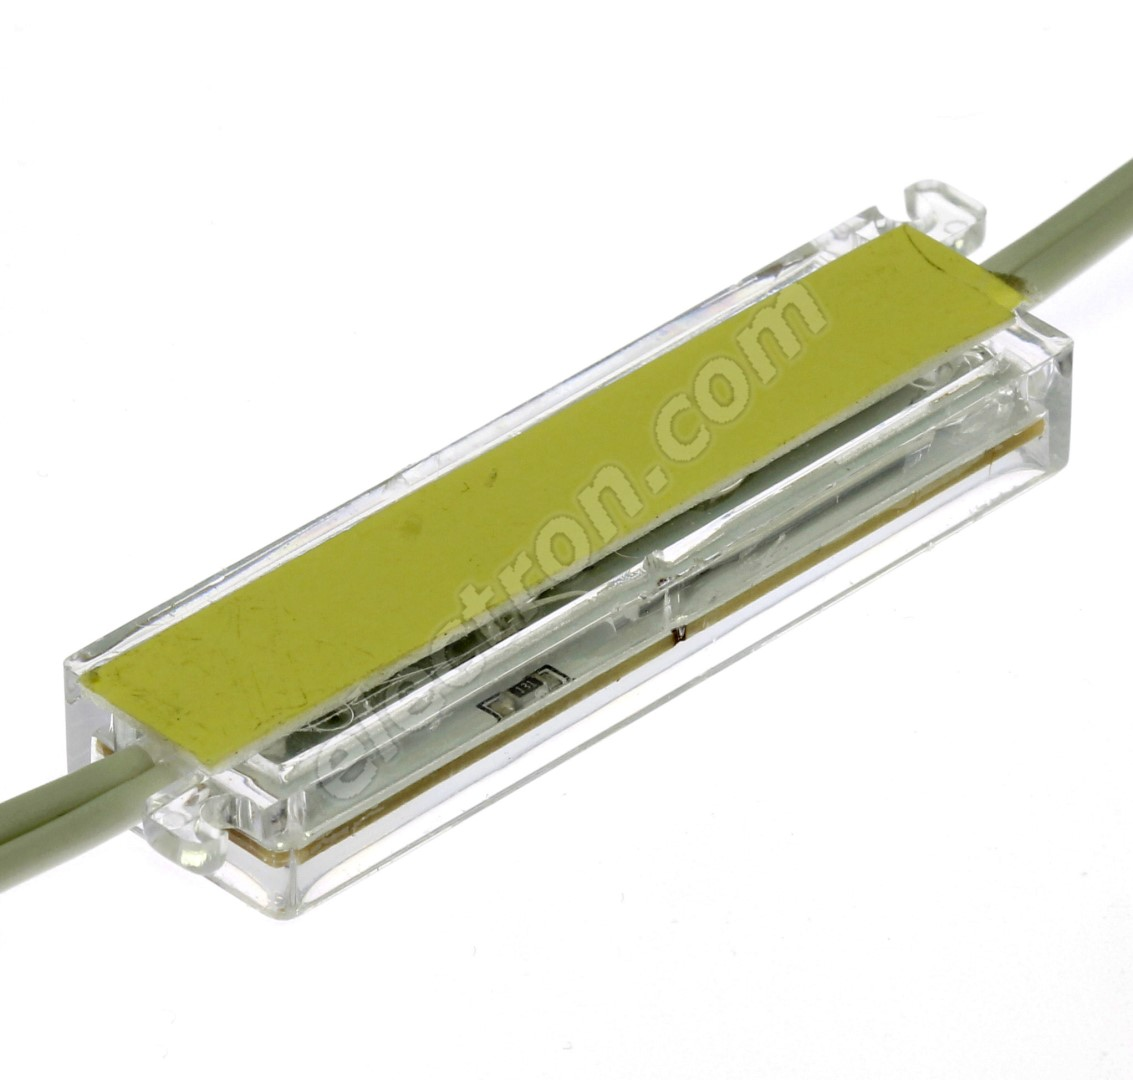 LED moduel 3xLED 0.72W Warm White, 45lm/120° - 70x20mm Hebei LM-5050W3-3P-12V